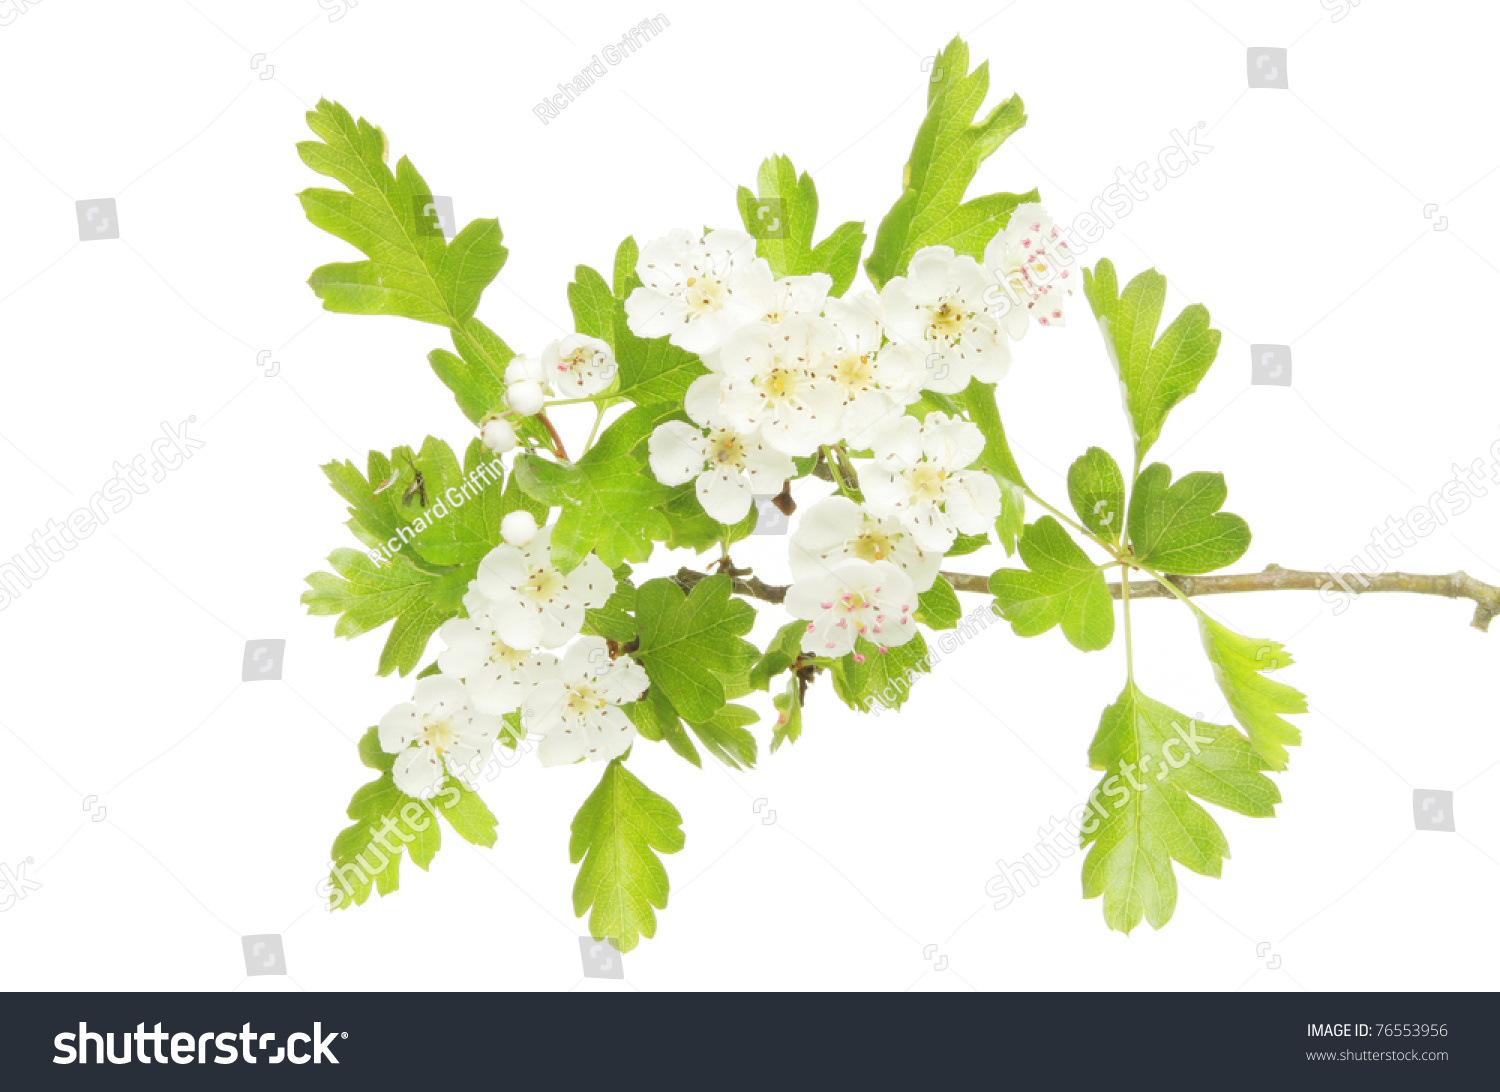 Hawthorn Flowers And Leaves Also Known As May Blossom Isolated